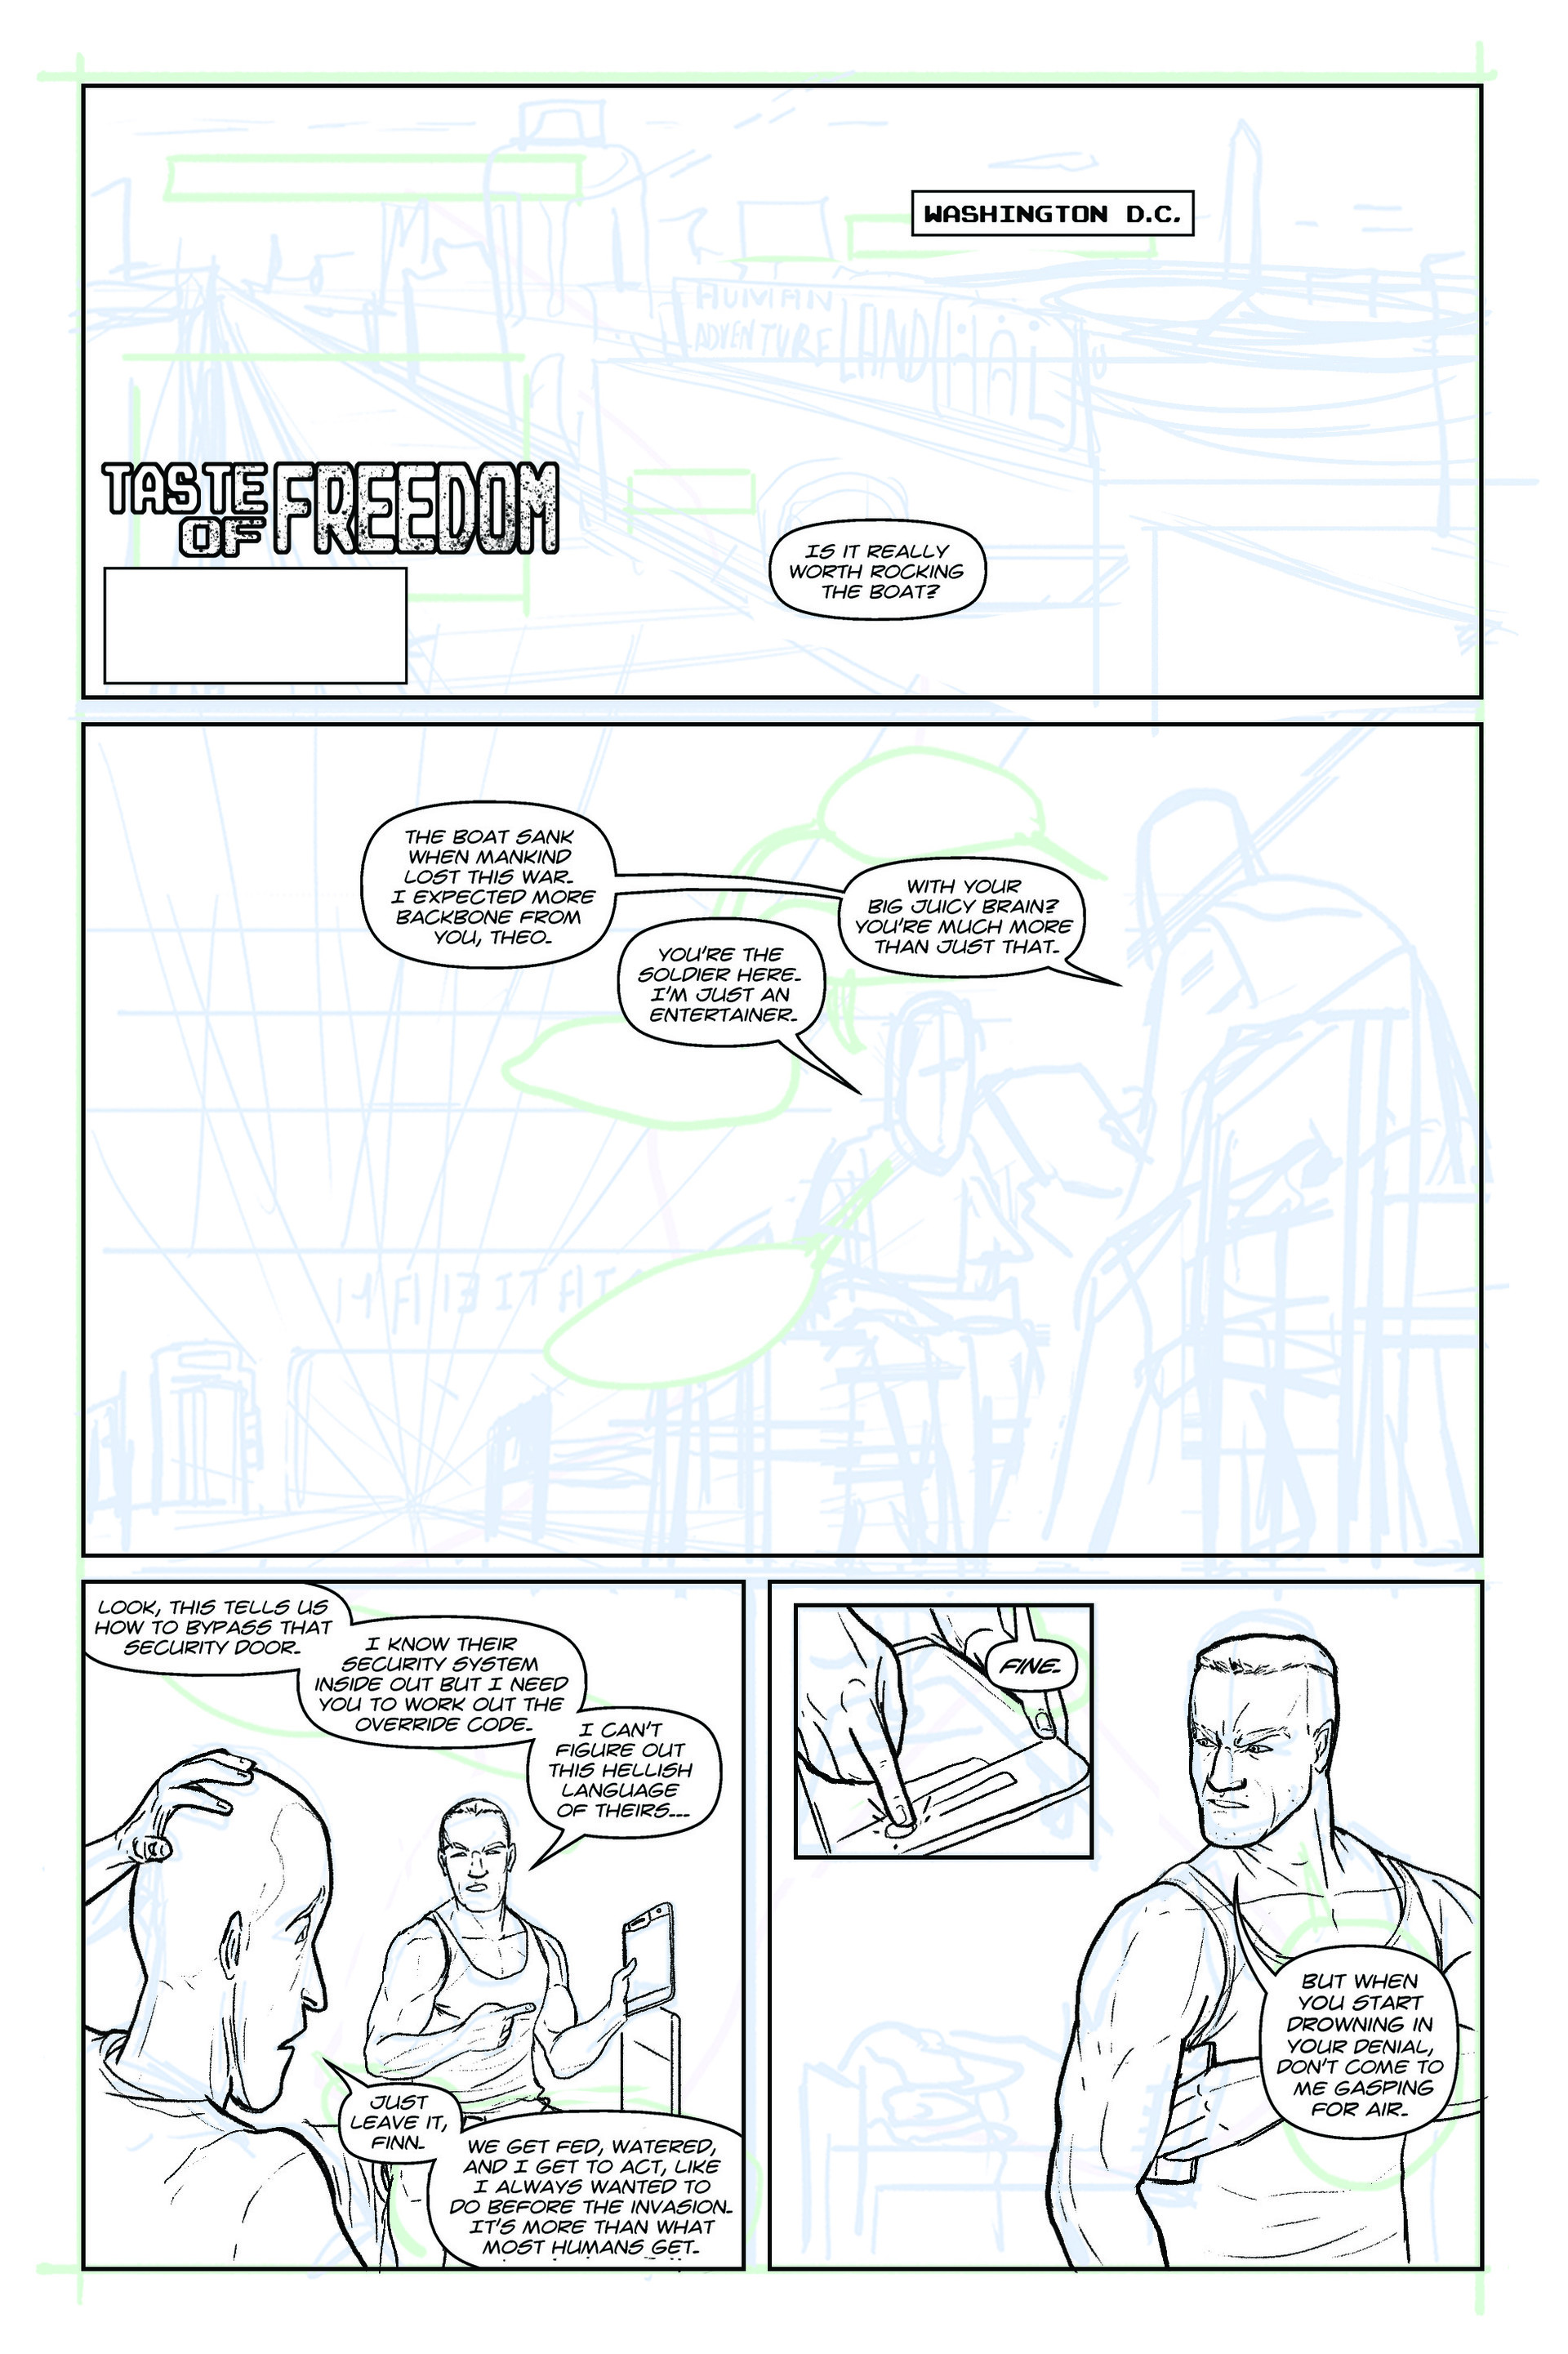 Elliot balson tof page 1 wip